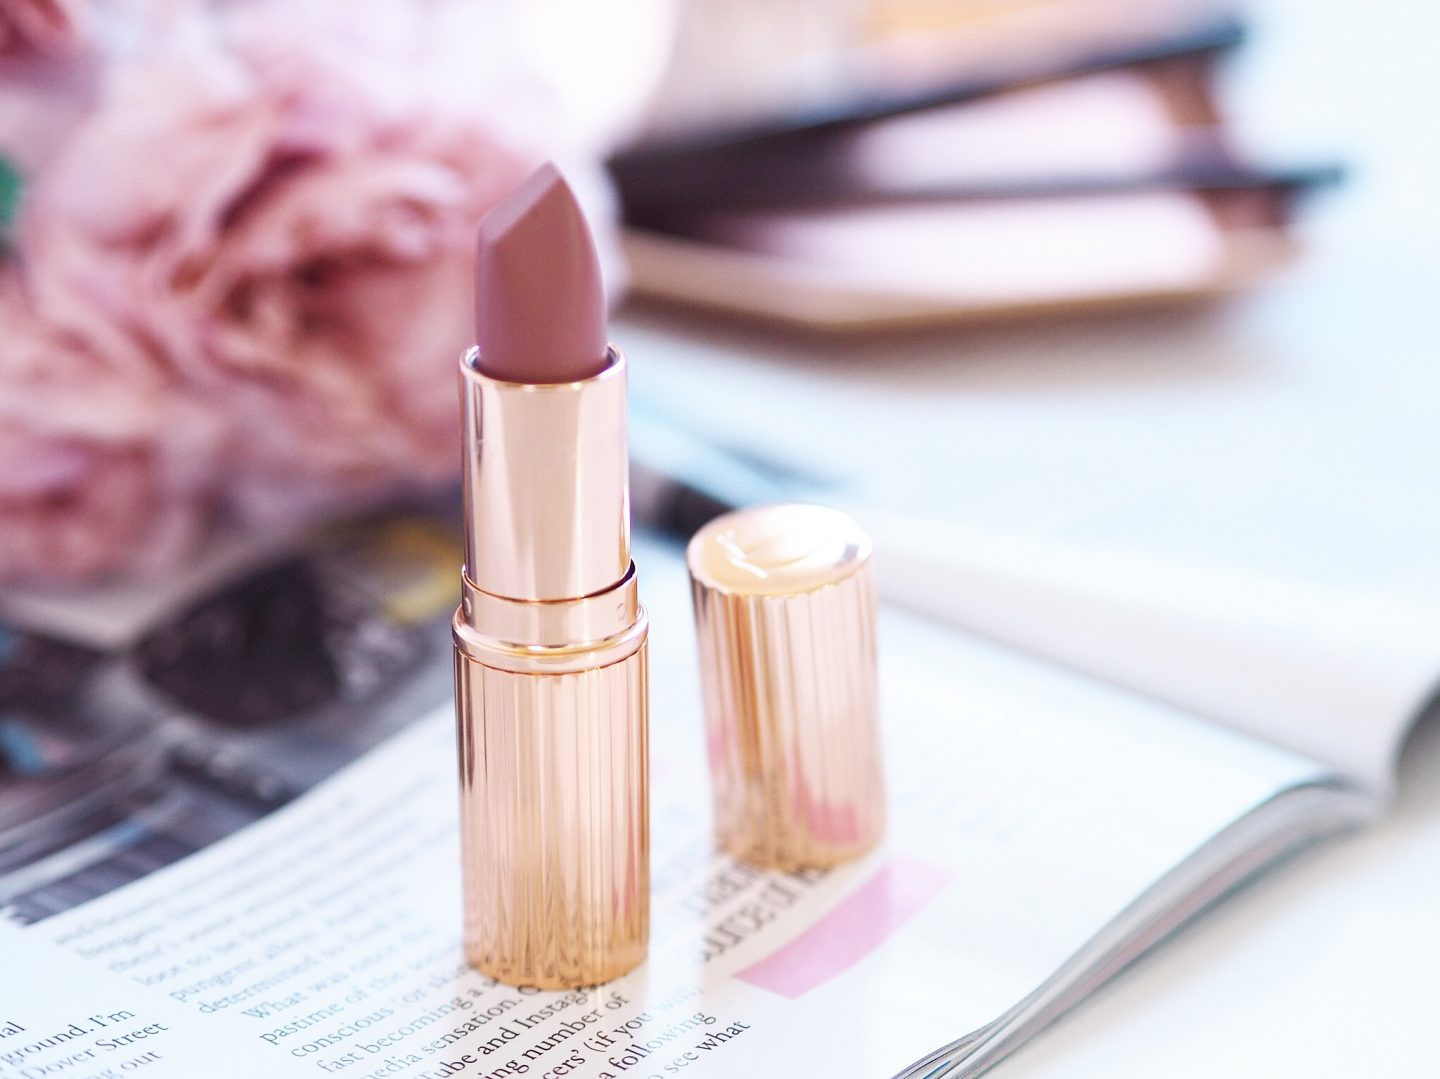 Charlotte Tilbury Pillowtalk